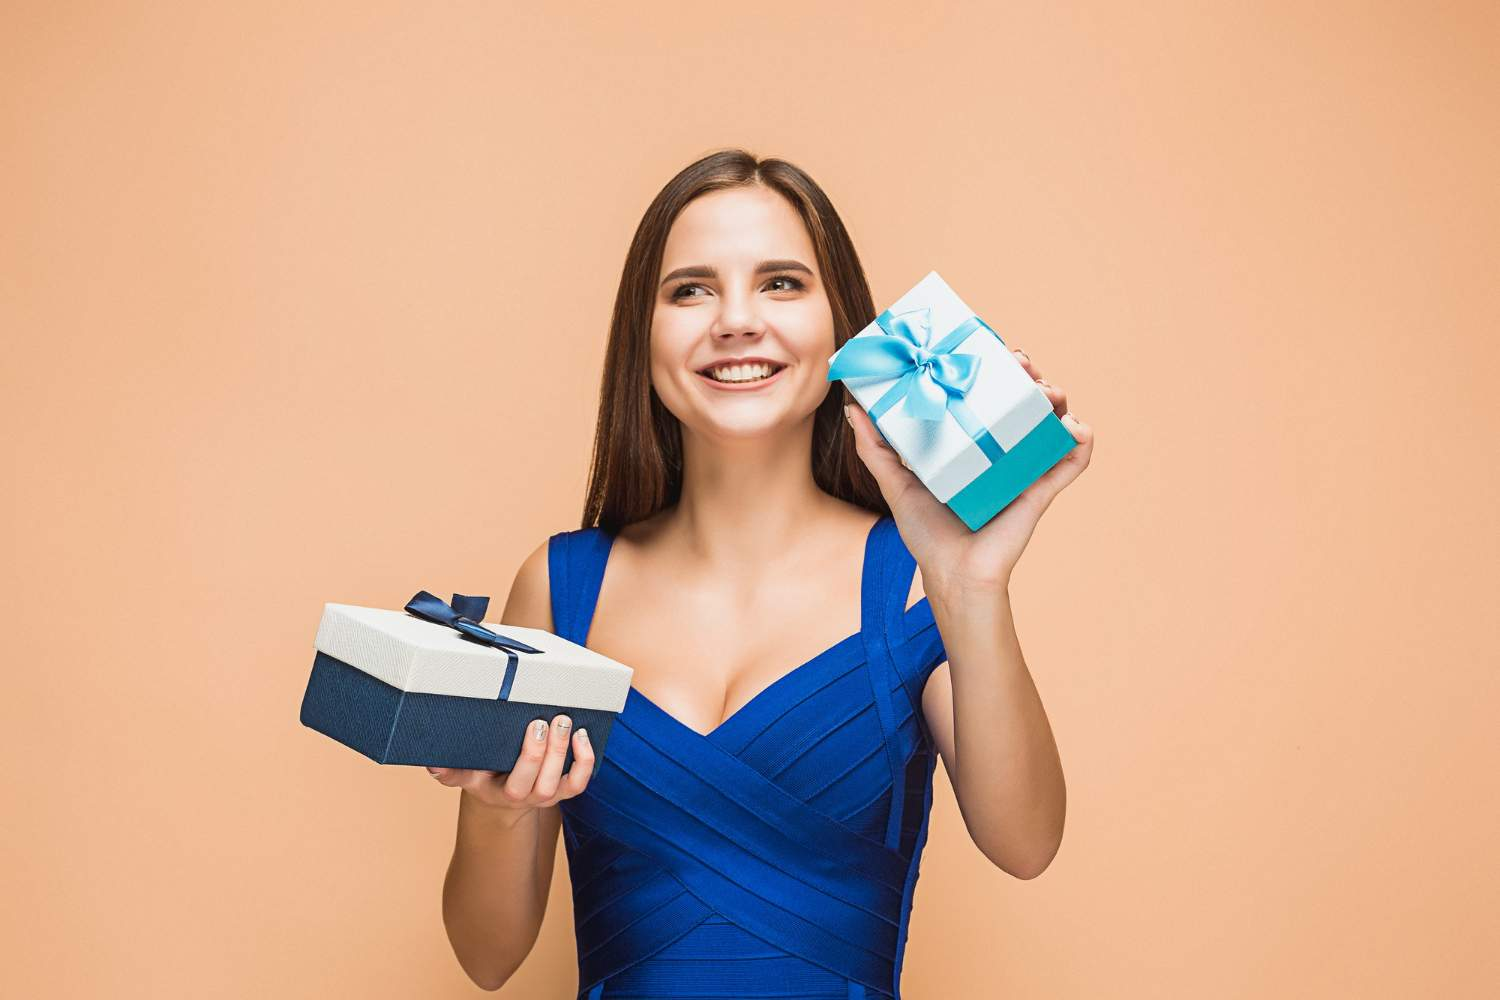 Send Gifts for Girls